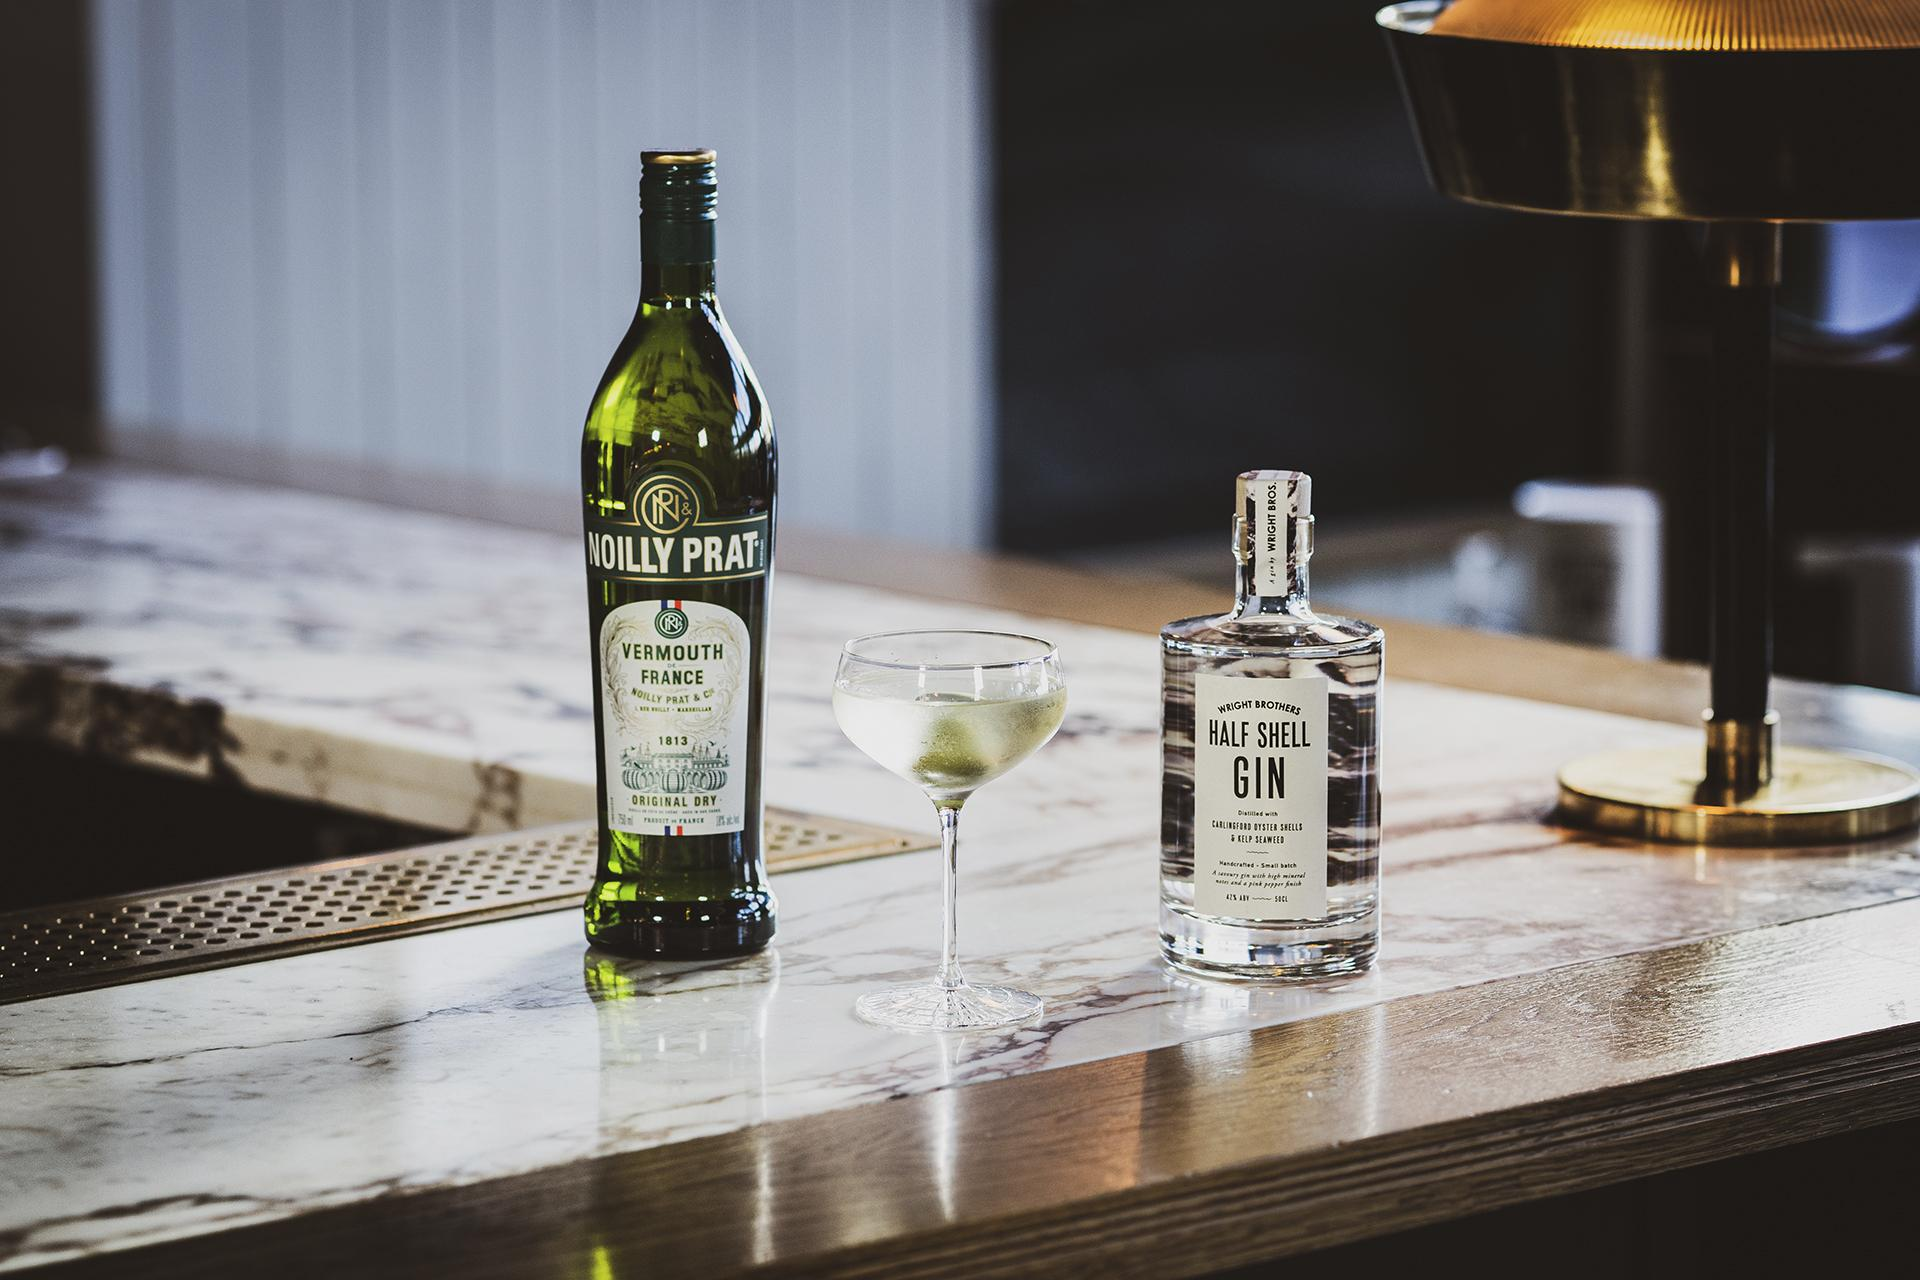 Wright Brother's gin and Noilly Prat